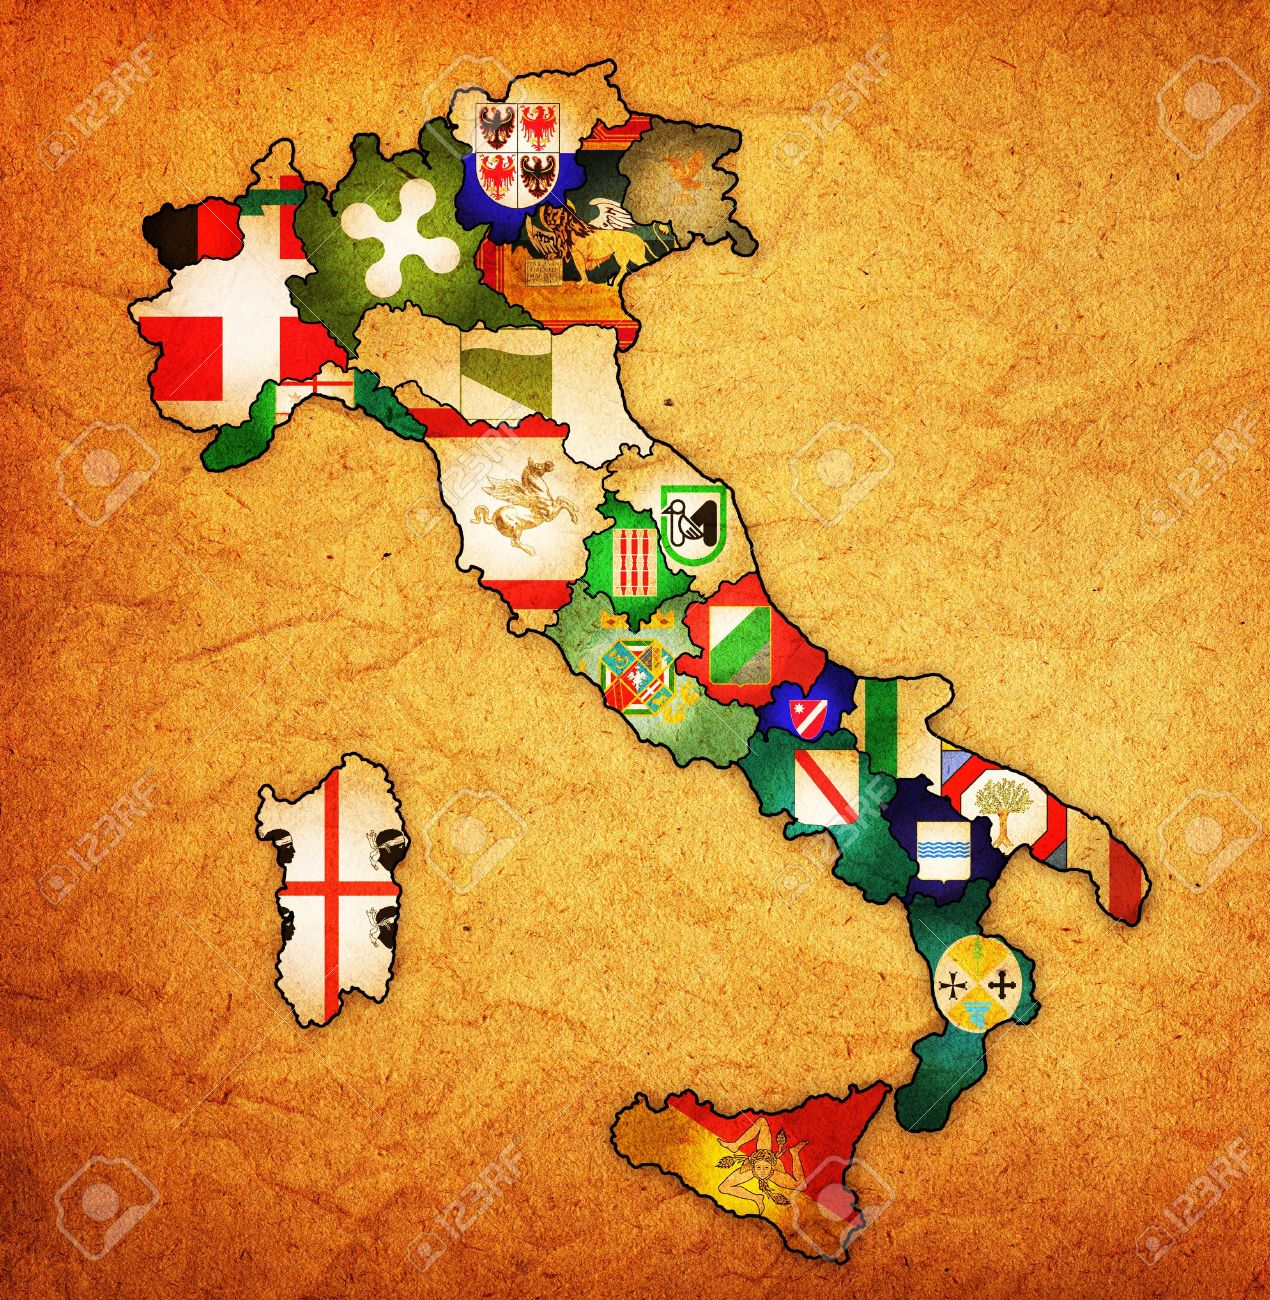 18088066-all-regions-on-administration-map-of-italy-with-flags-stock-photo